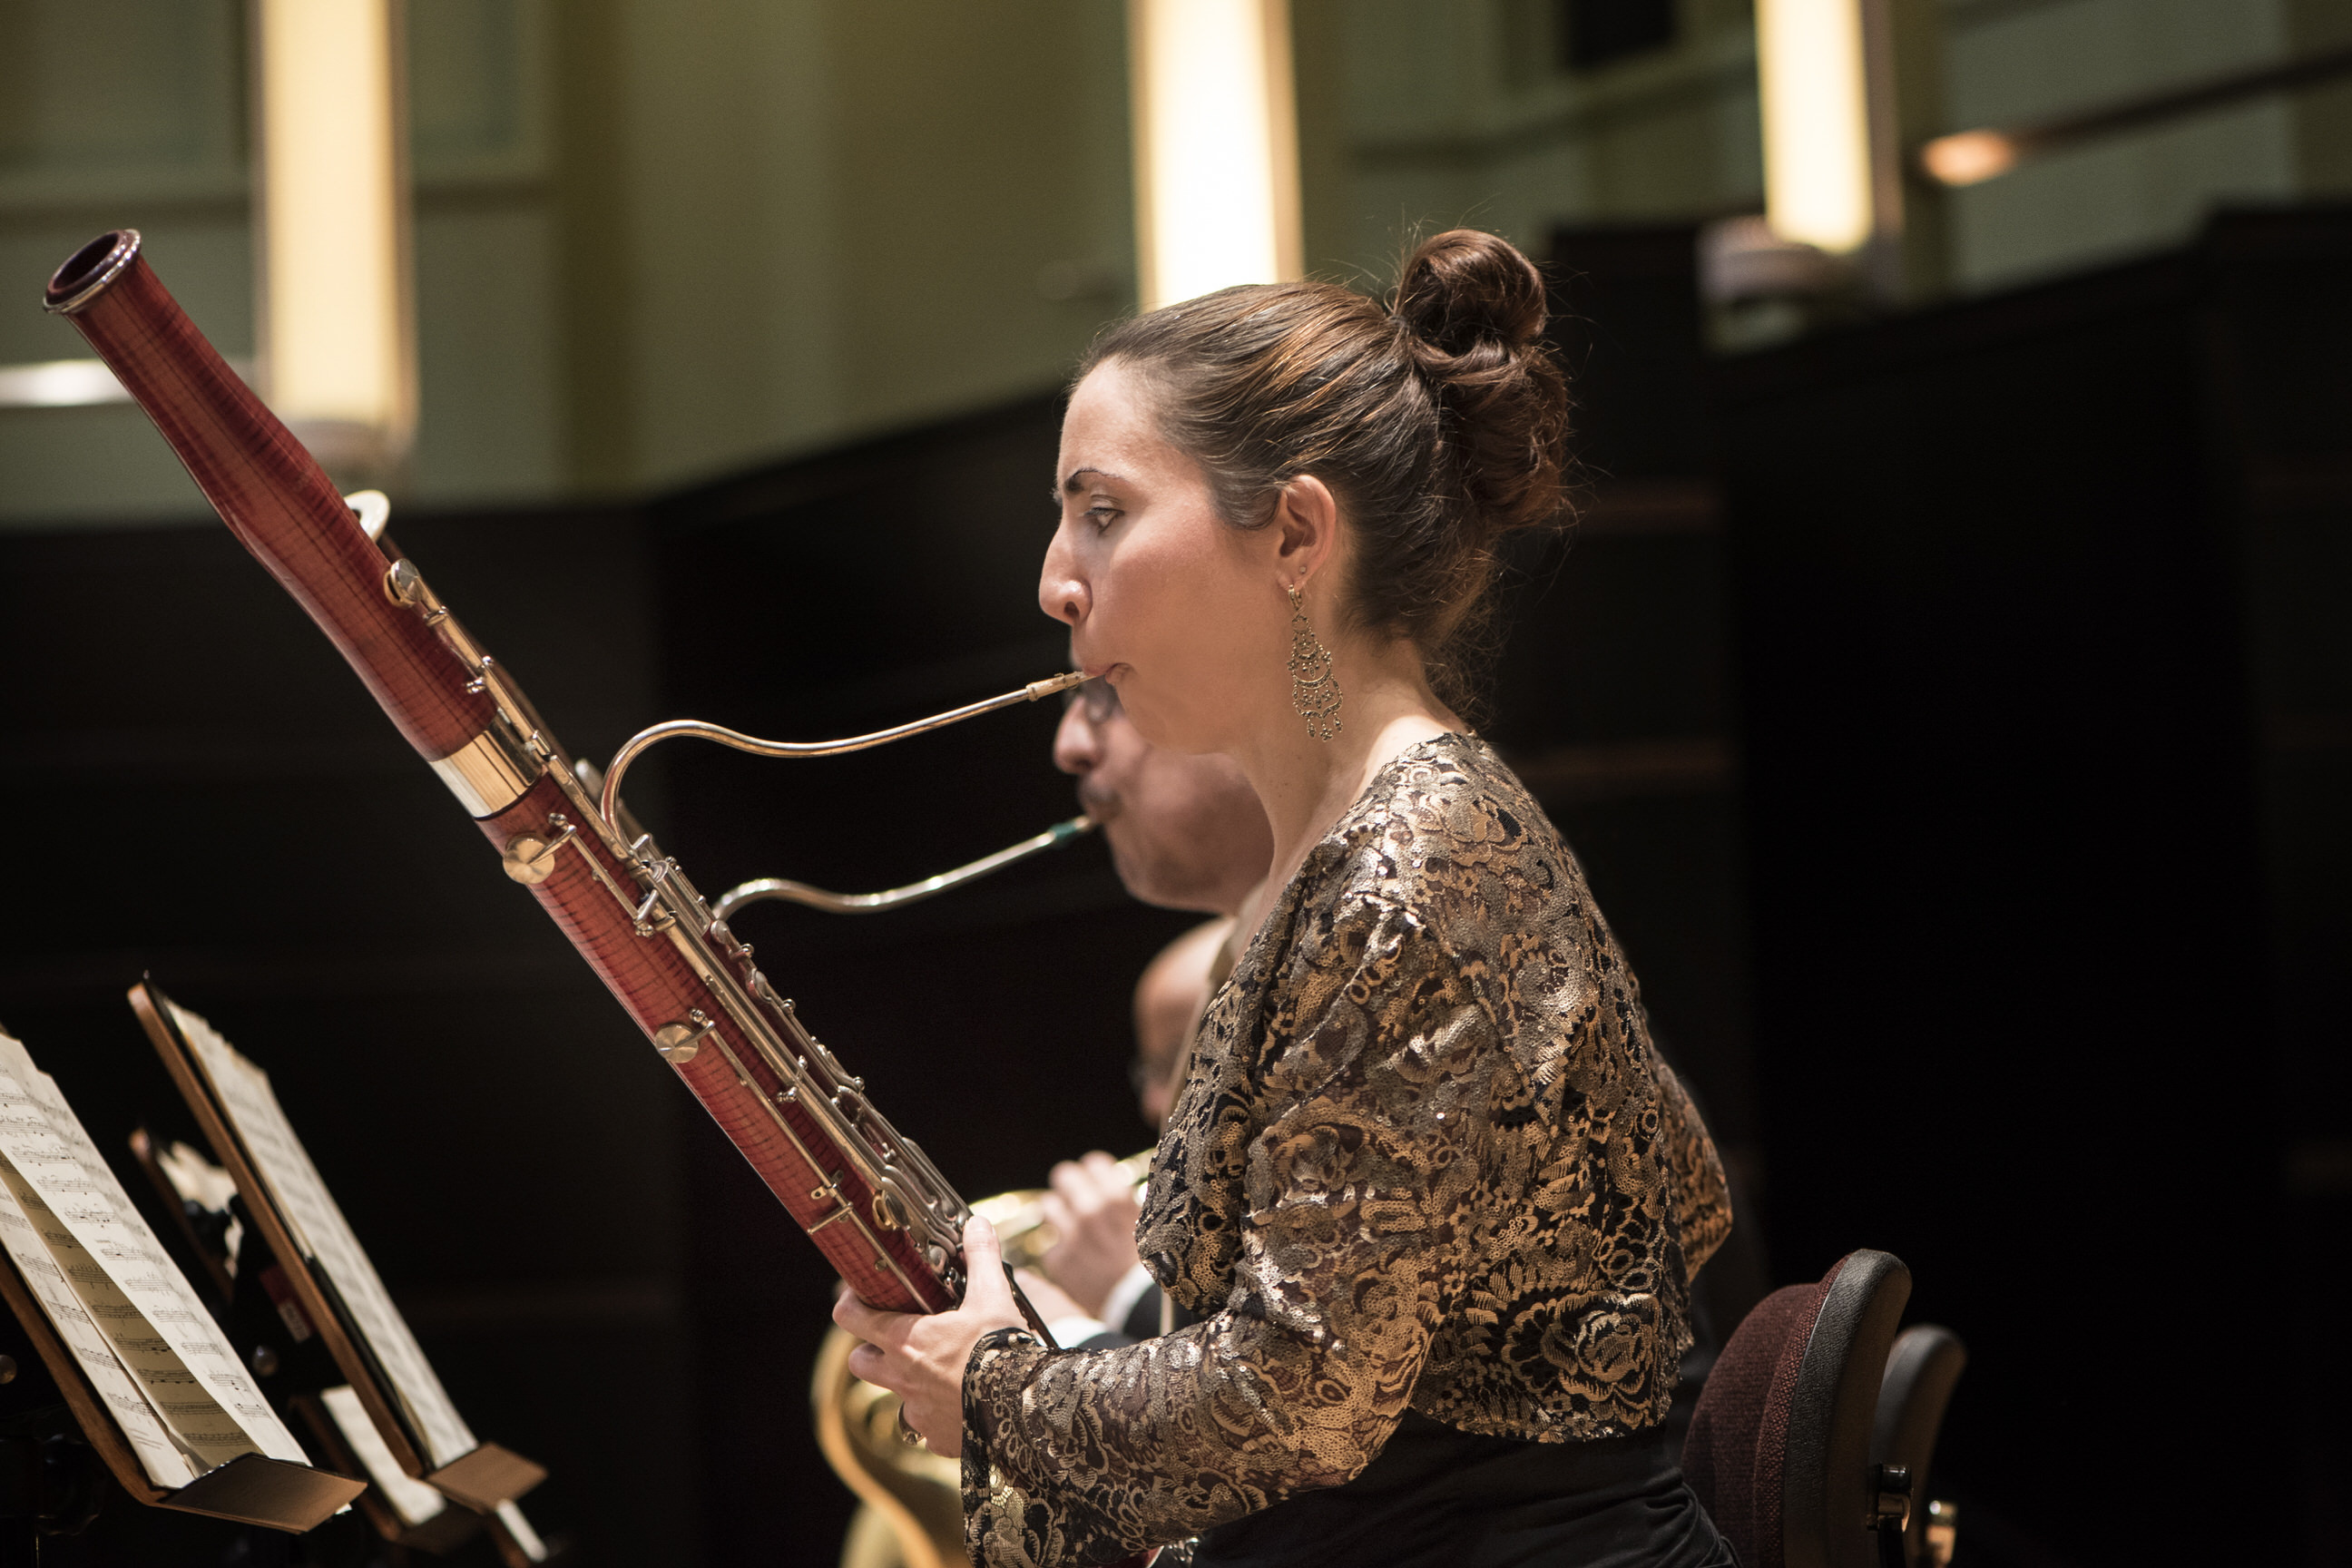 Gina Playing bassoon